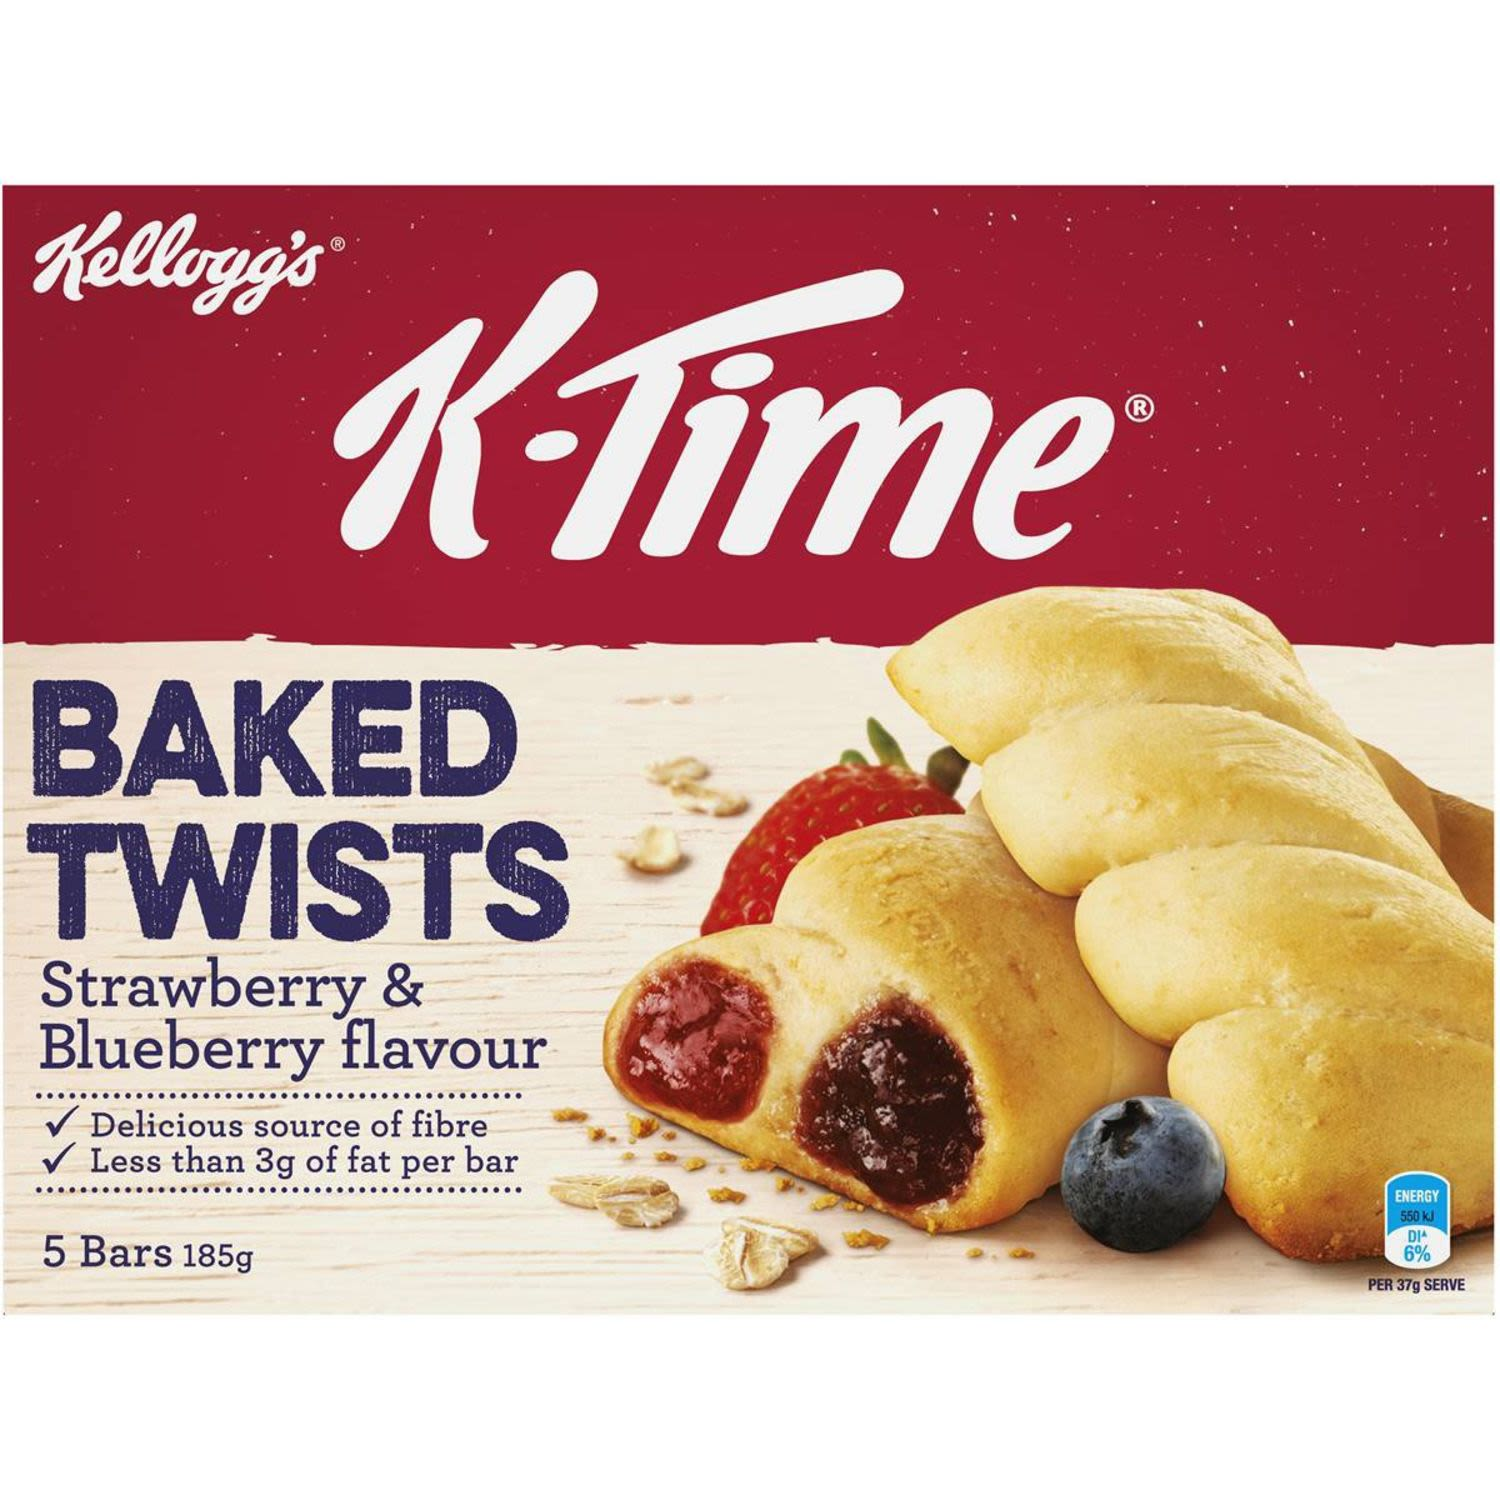 Kellogg's K-Time Baked Twists fruit flavour filled snack bars are a delightful combination of strawberry and blueberry flavoured fillings delicately twisted throughout a softly baked wheat and oat crust.  A great snack for the morning, afternoon or any time of the day that you need a pick me up, K-Time Baked Twists are a delicious source of fibre that can be enjoyed by the whole family!